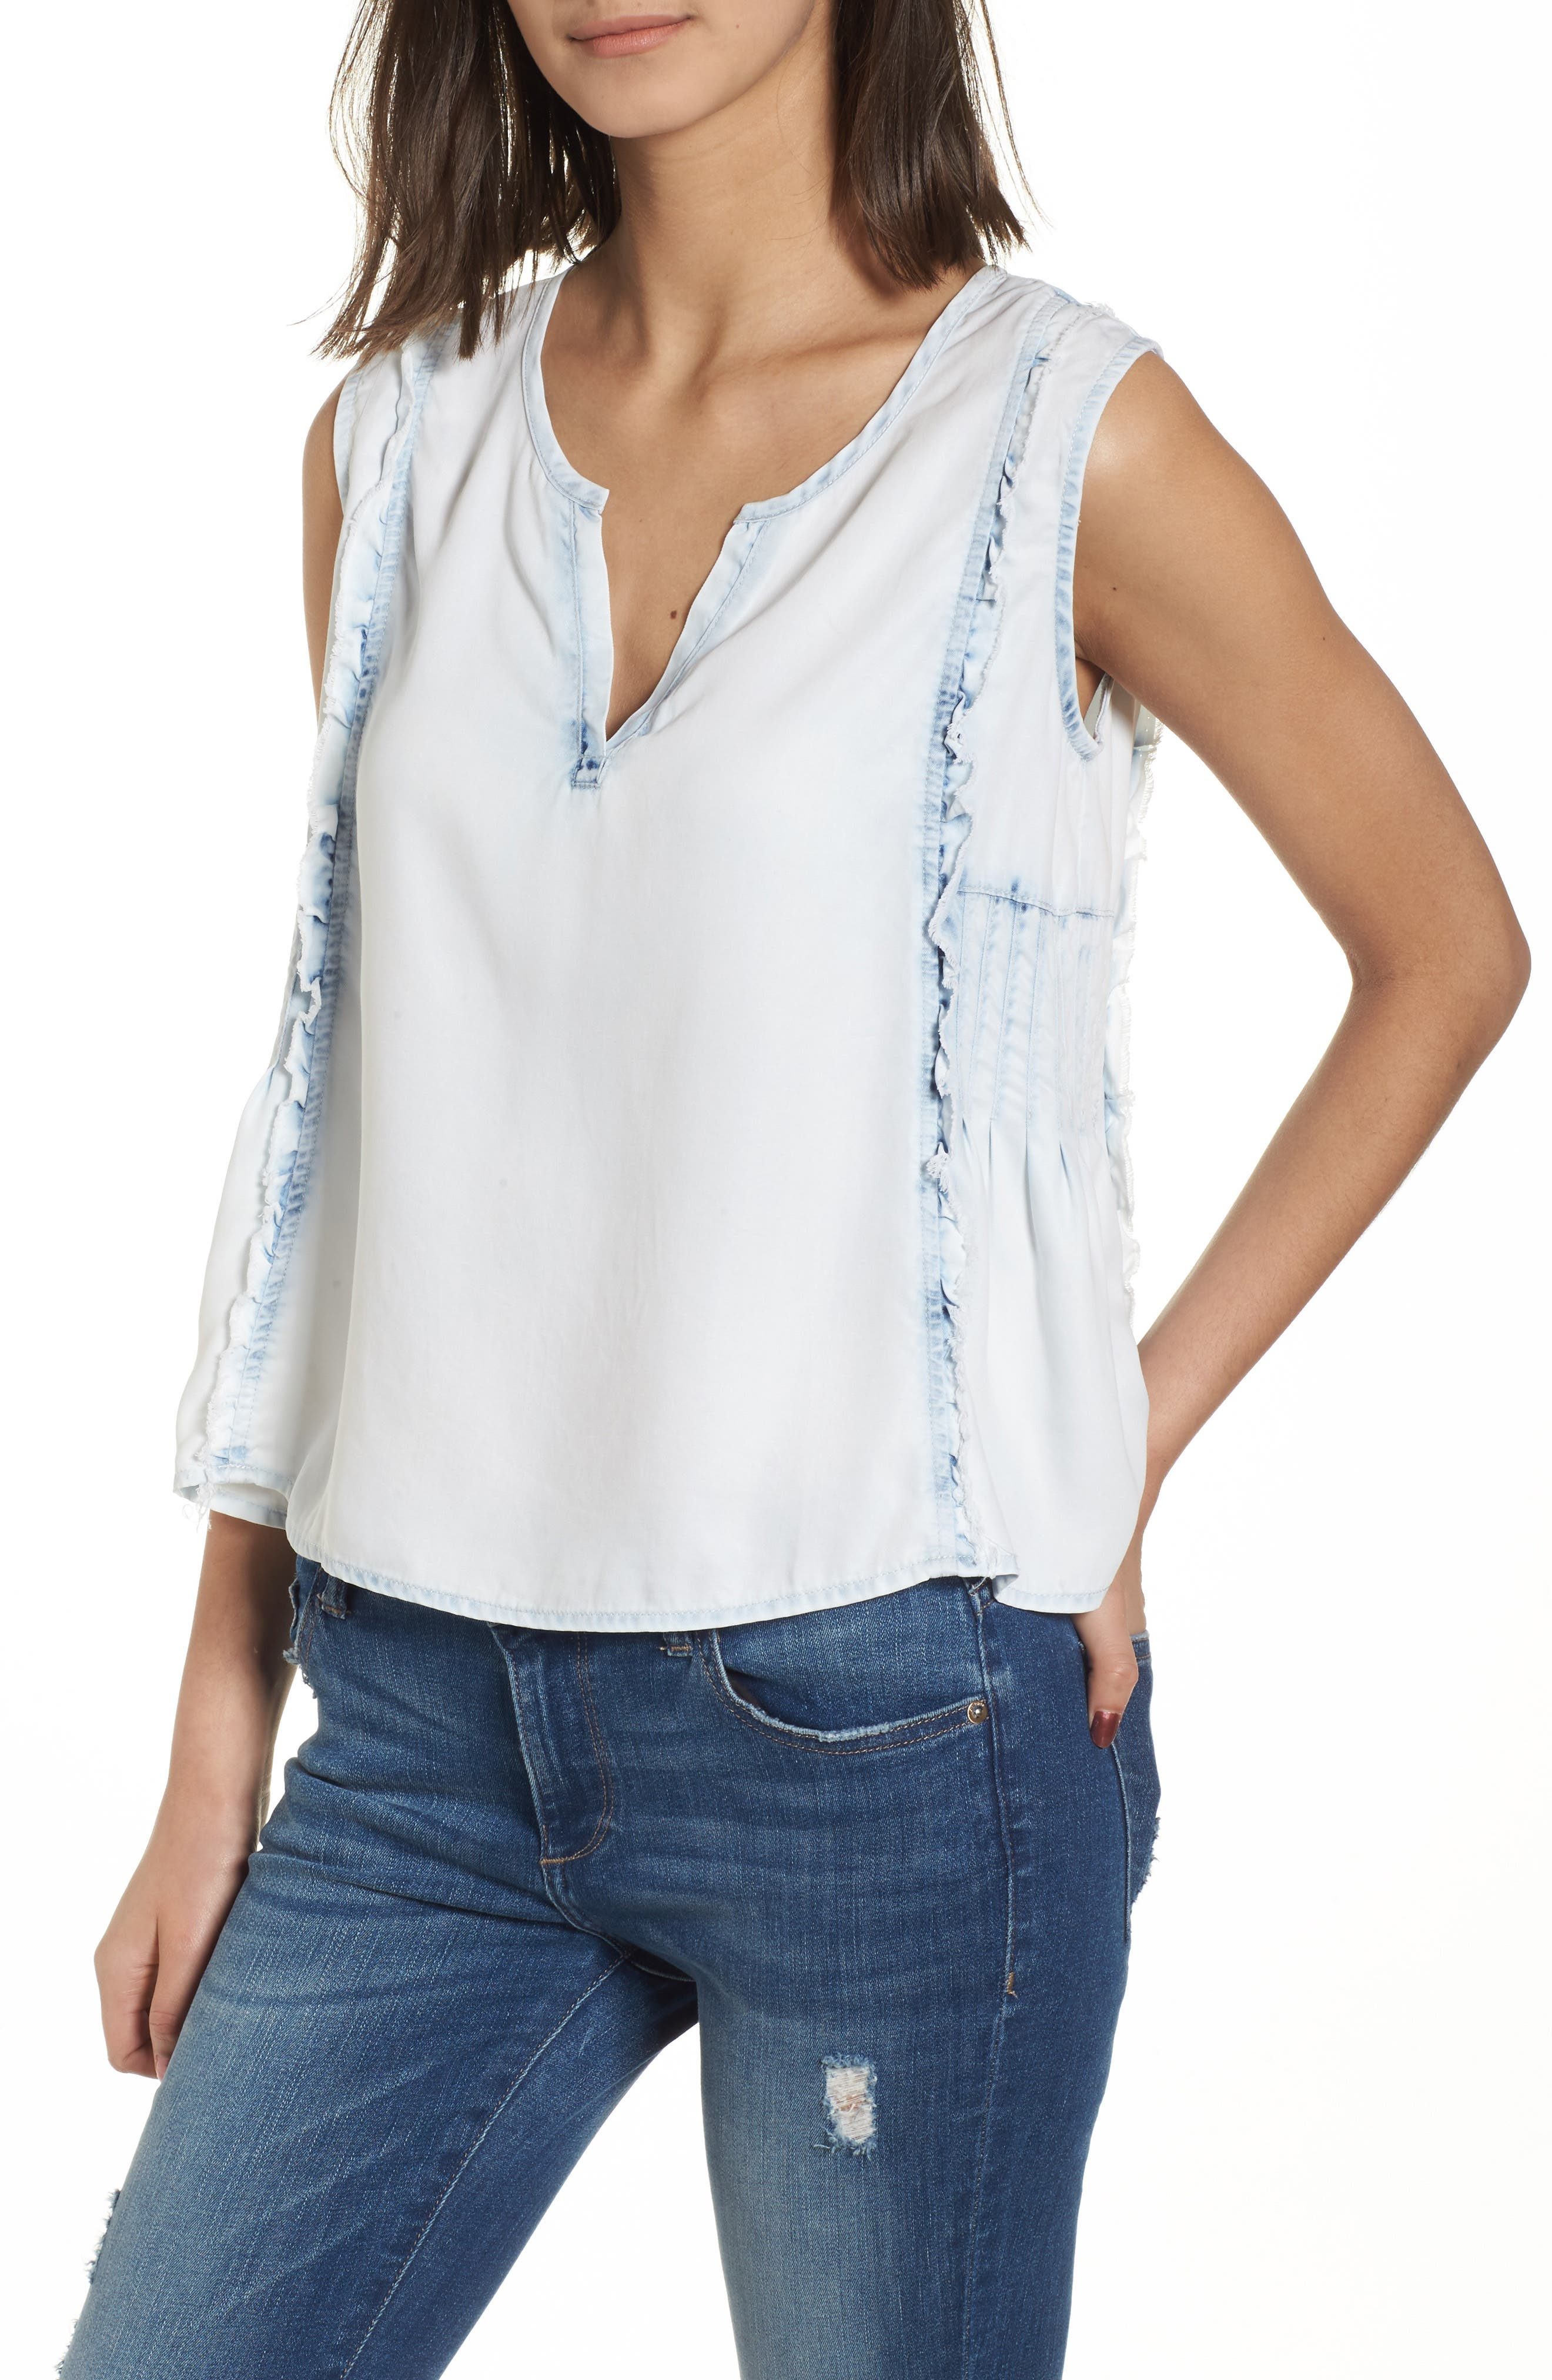 Mulberry St Chambray Top,                         Main,                         color, Irregular Bleach